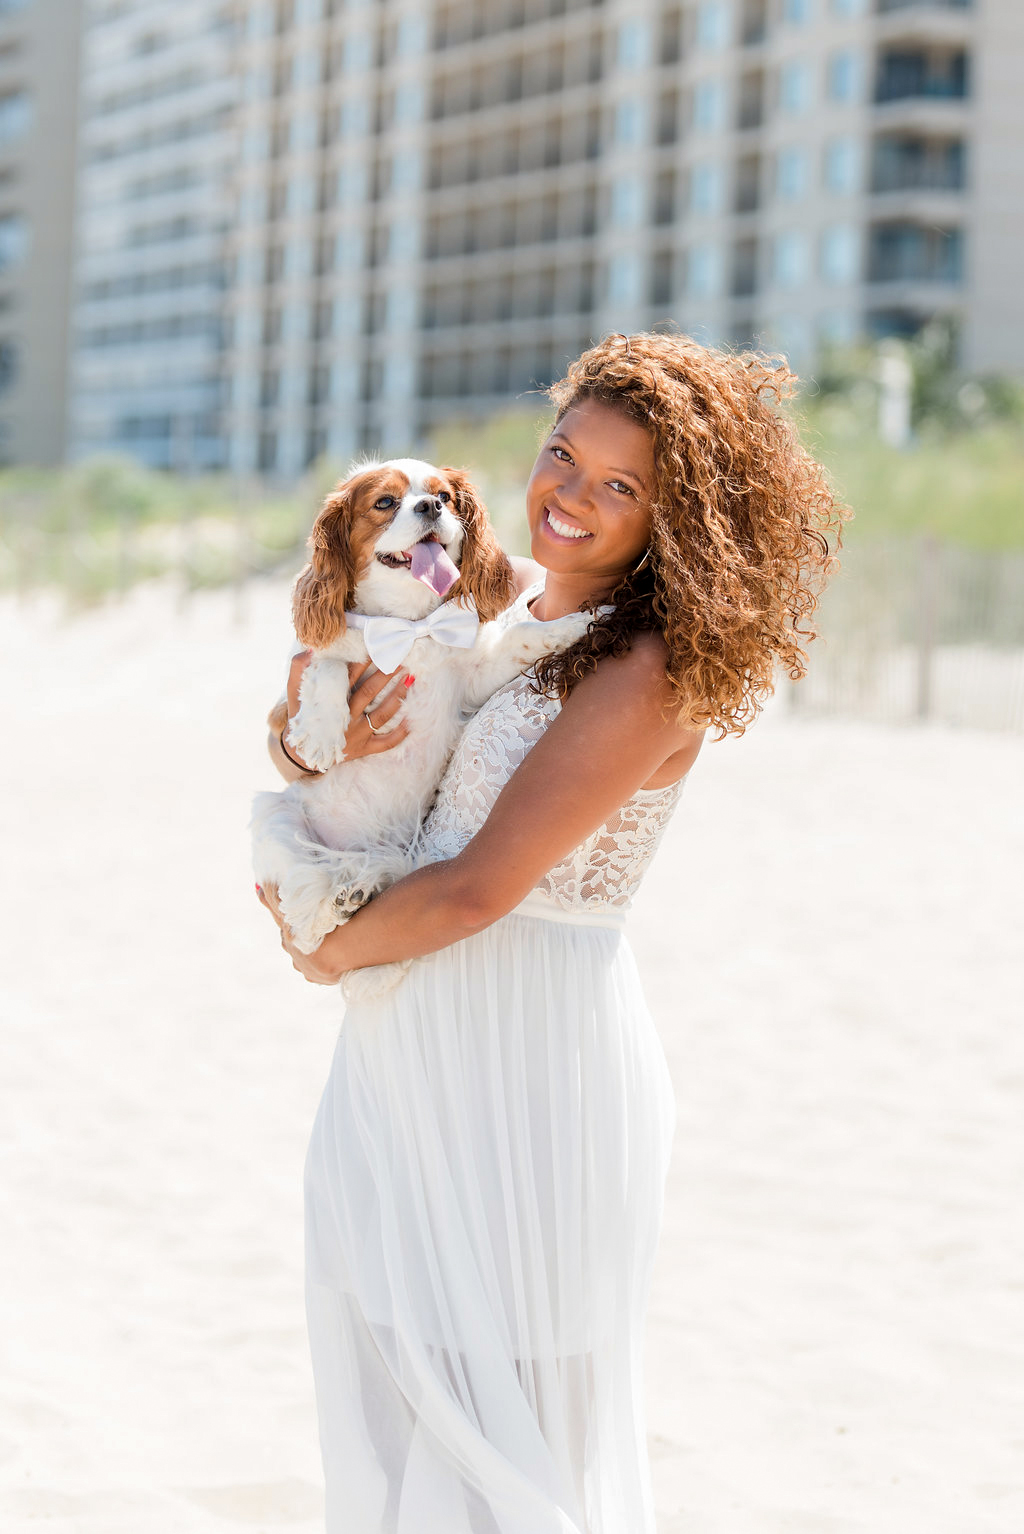 Should You Bring Your Pet on Your Honeymoon?